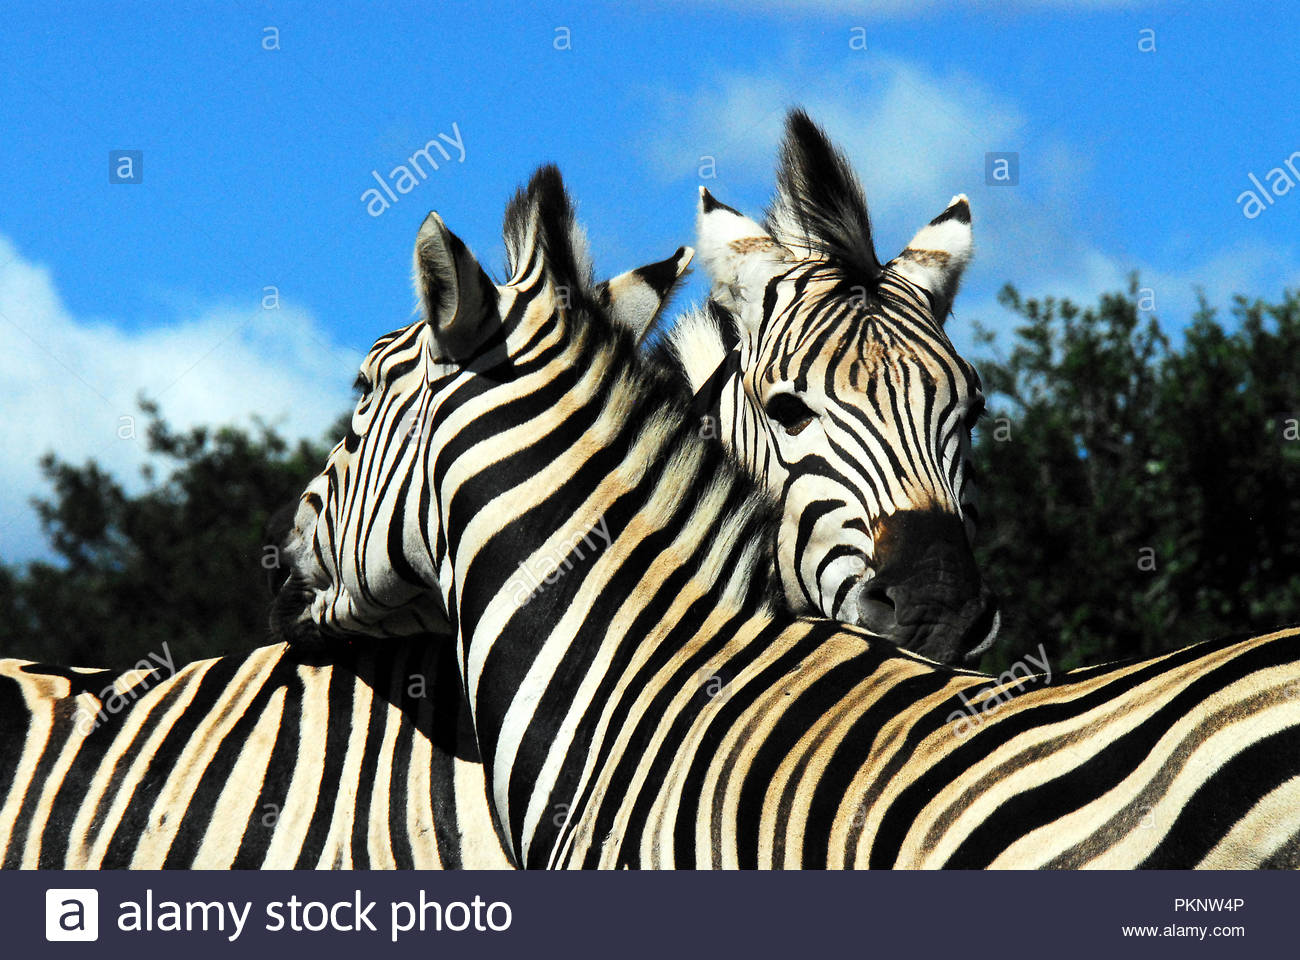 What a cute and romantic image.  Wild Zebras showing affection. - Stock Image